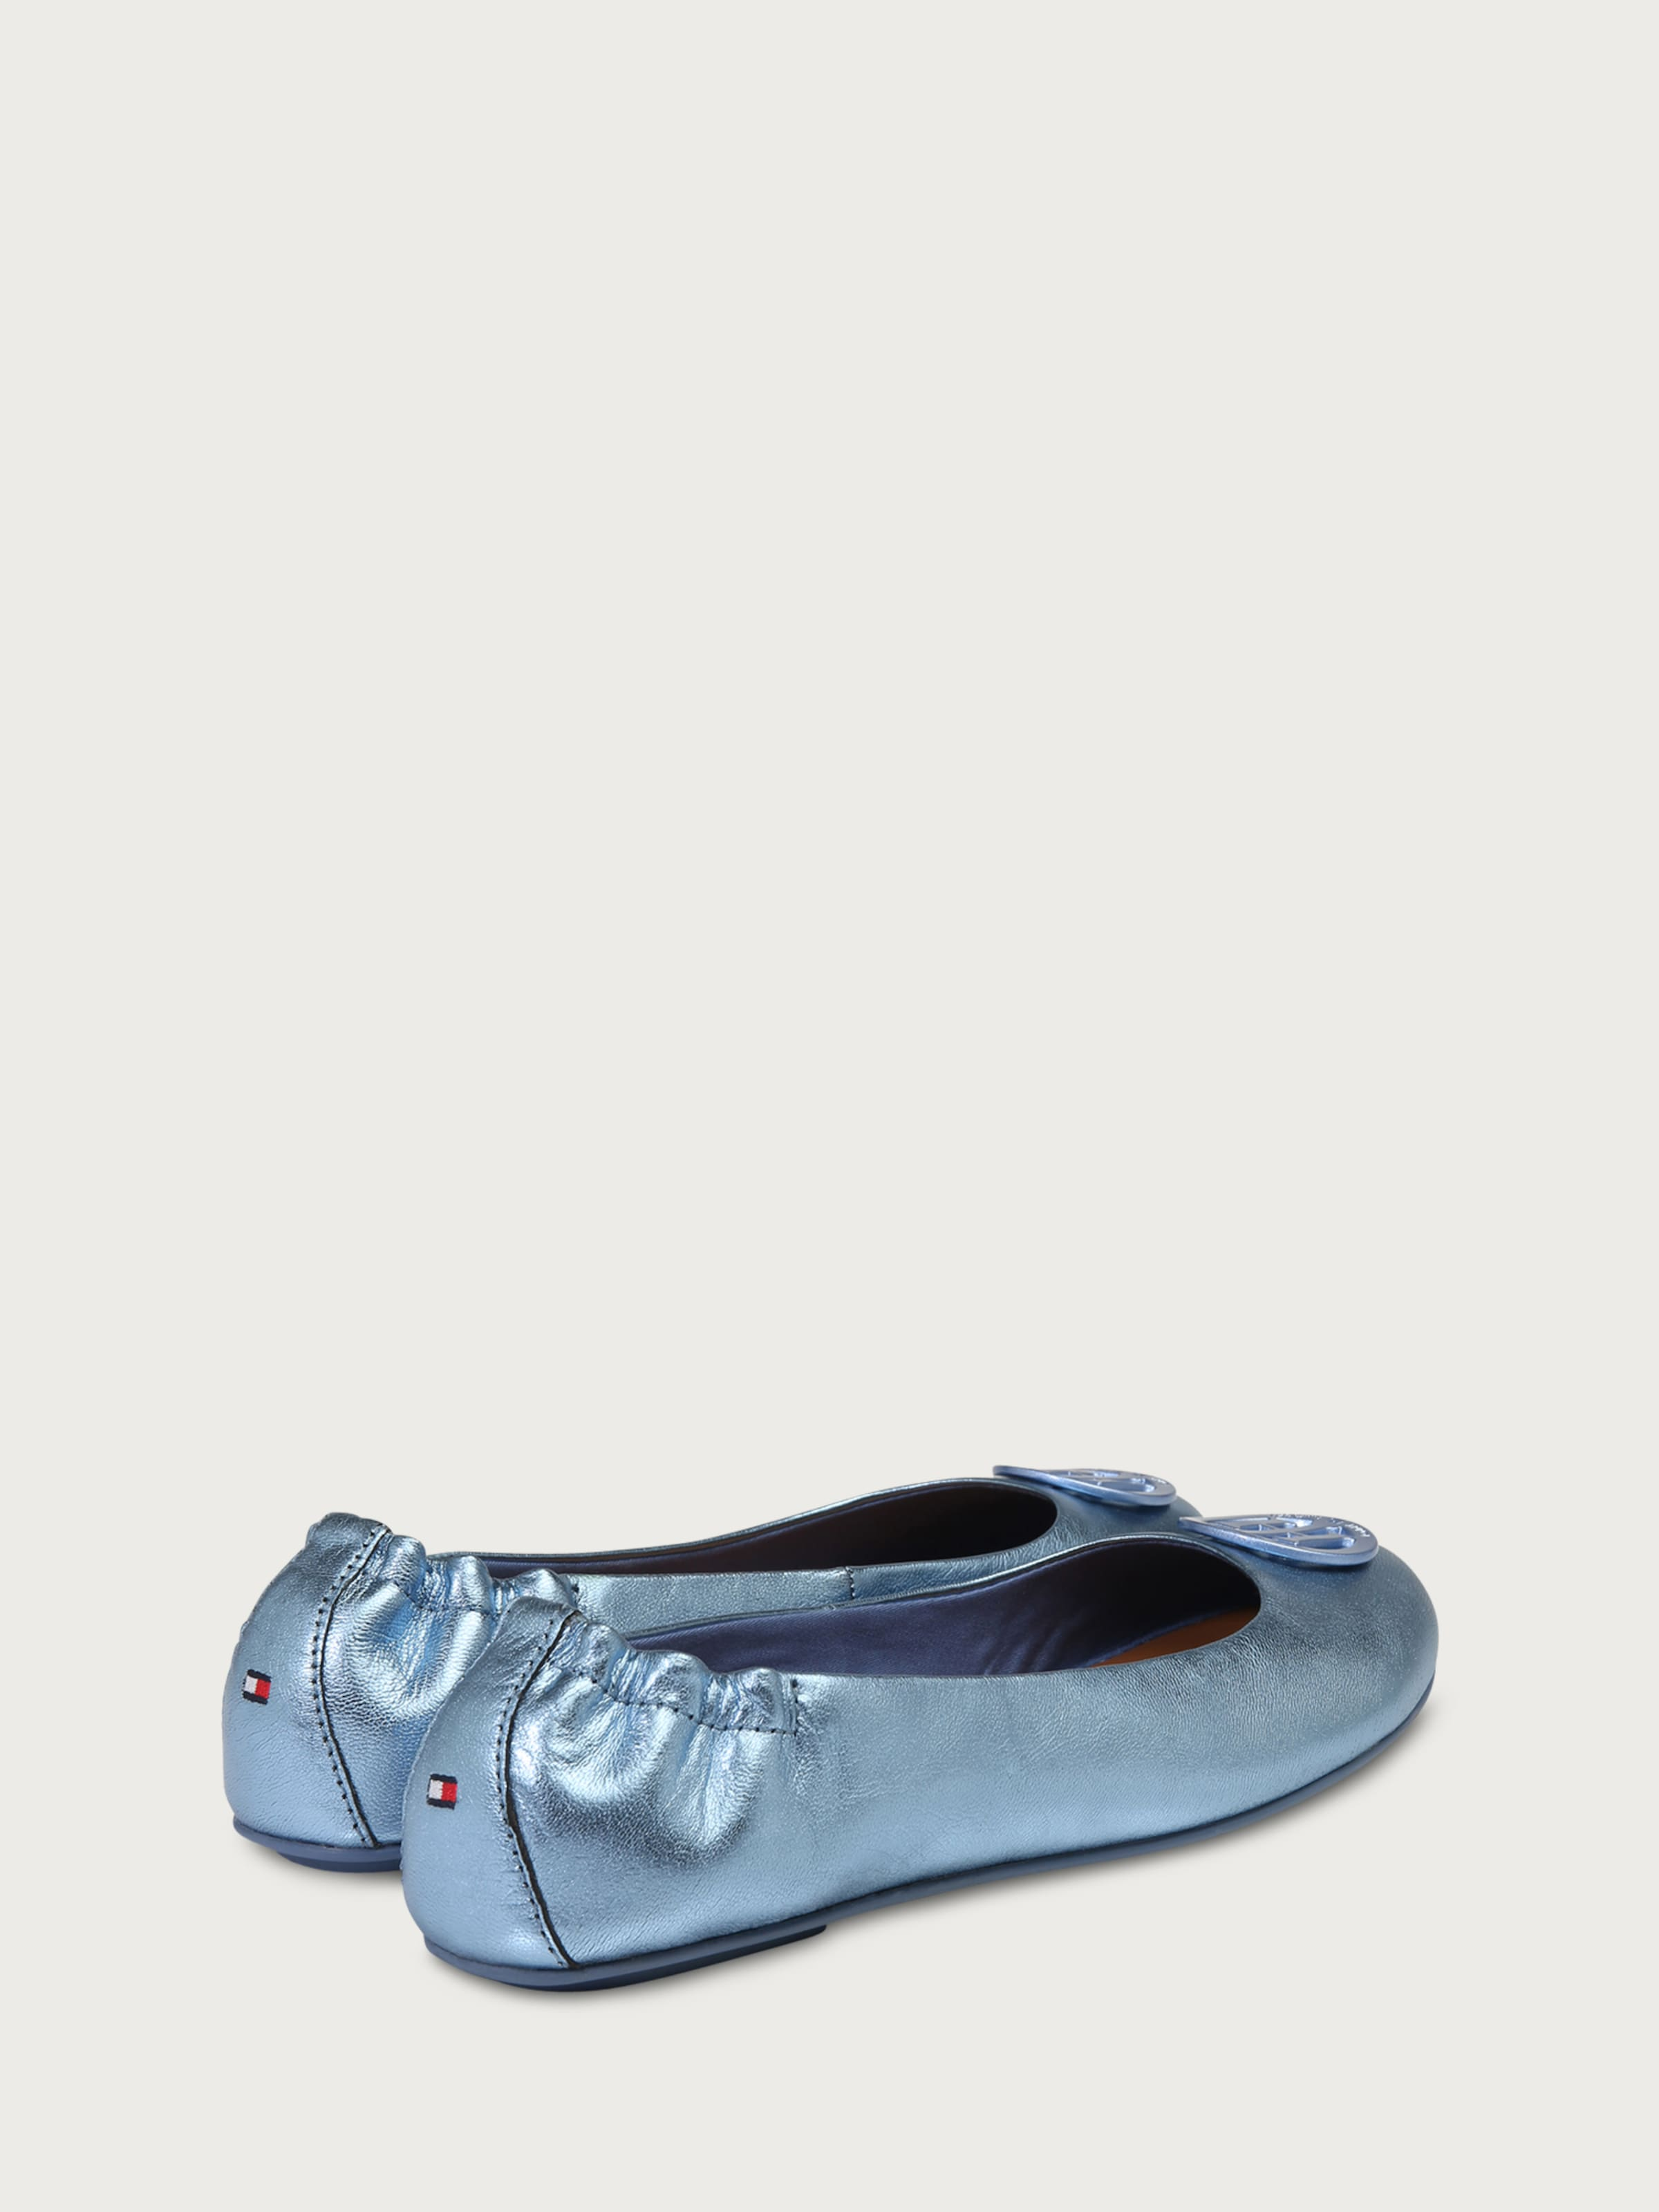 TOMMY HILFIGER Ballerinas in Metallic-Optik Rabatt Qualität Original xi5S6L